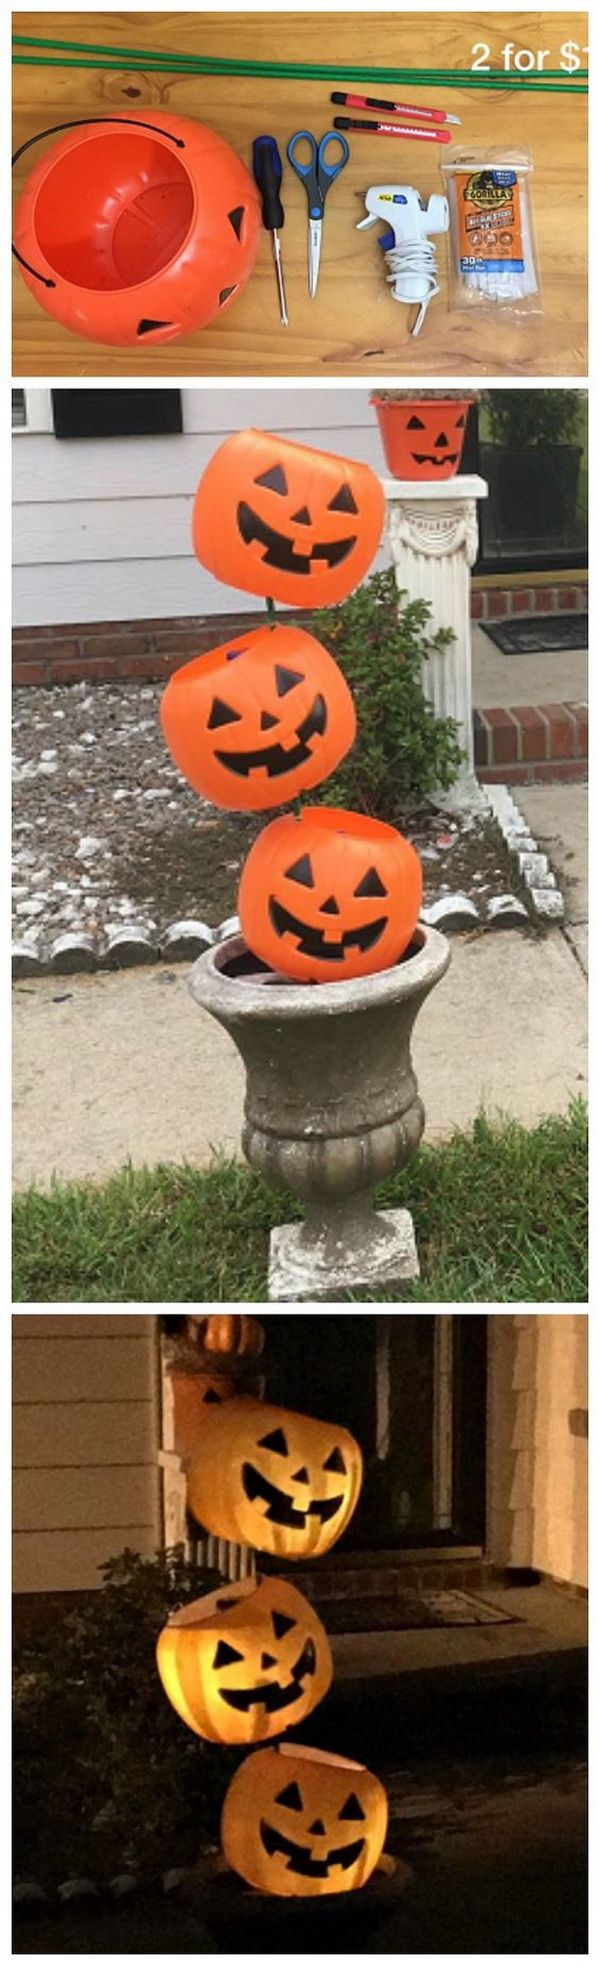 30+ Homemade Halloween Decoration Ideas Plastic pumpkins, Diy